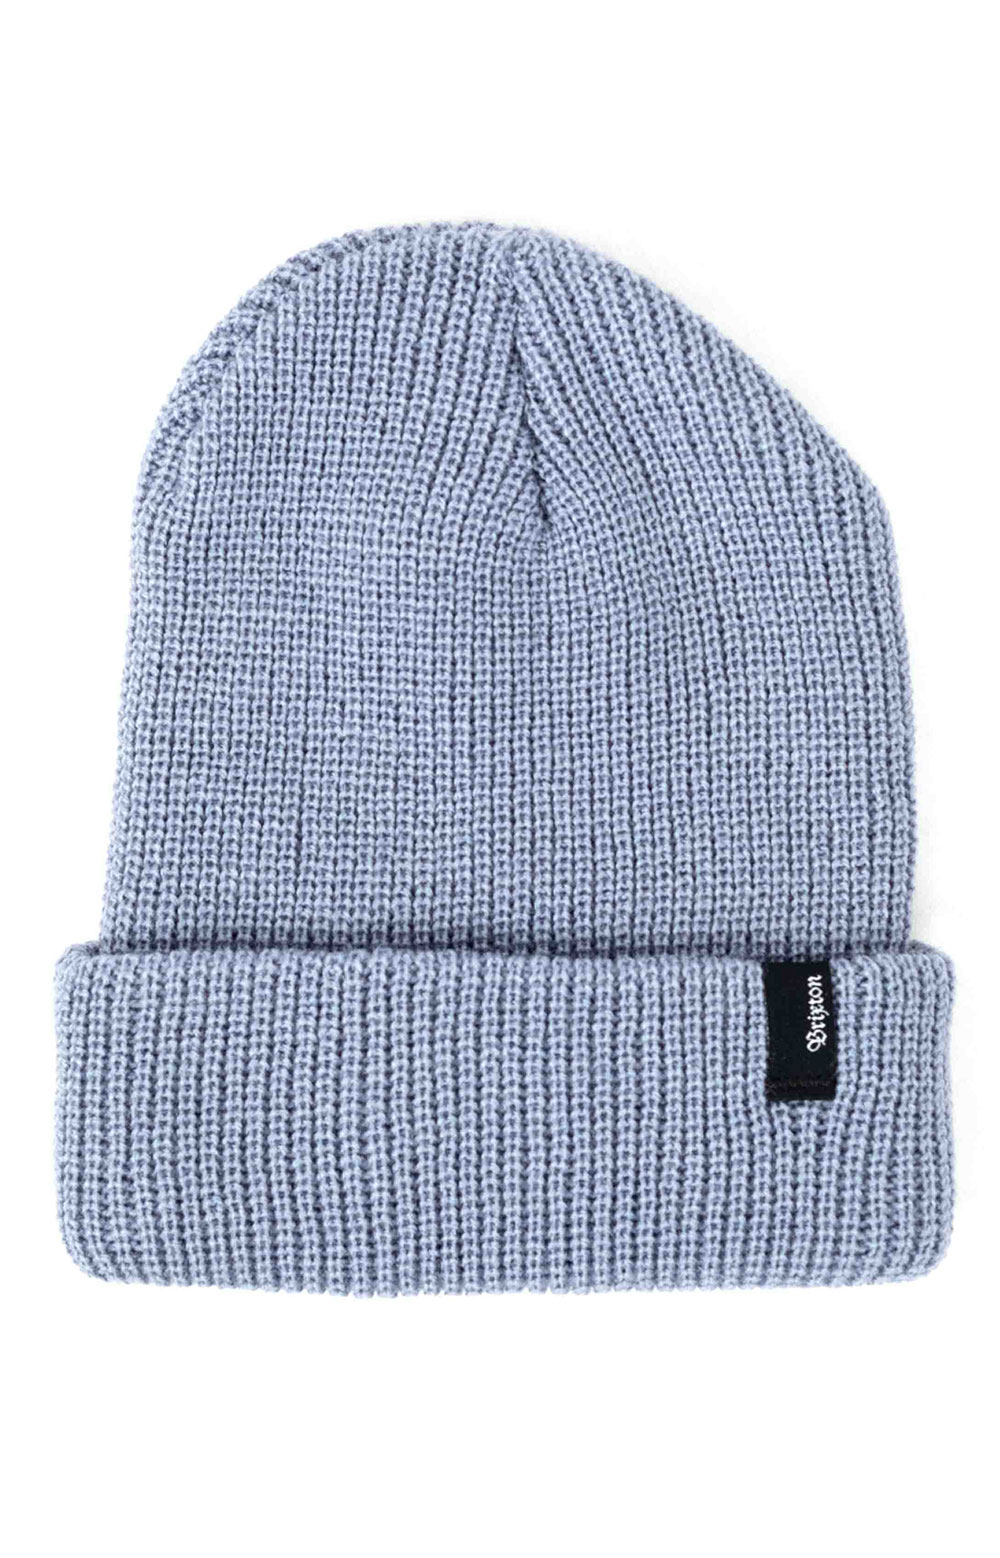 Heist Beanie - Twilight Blue